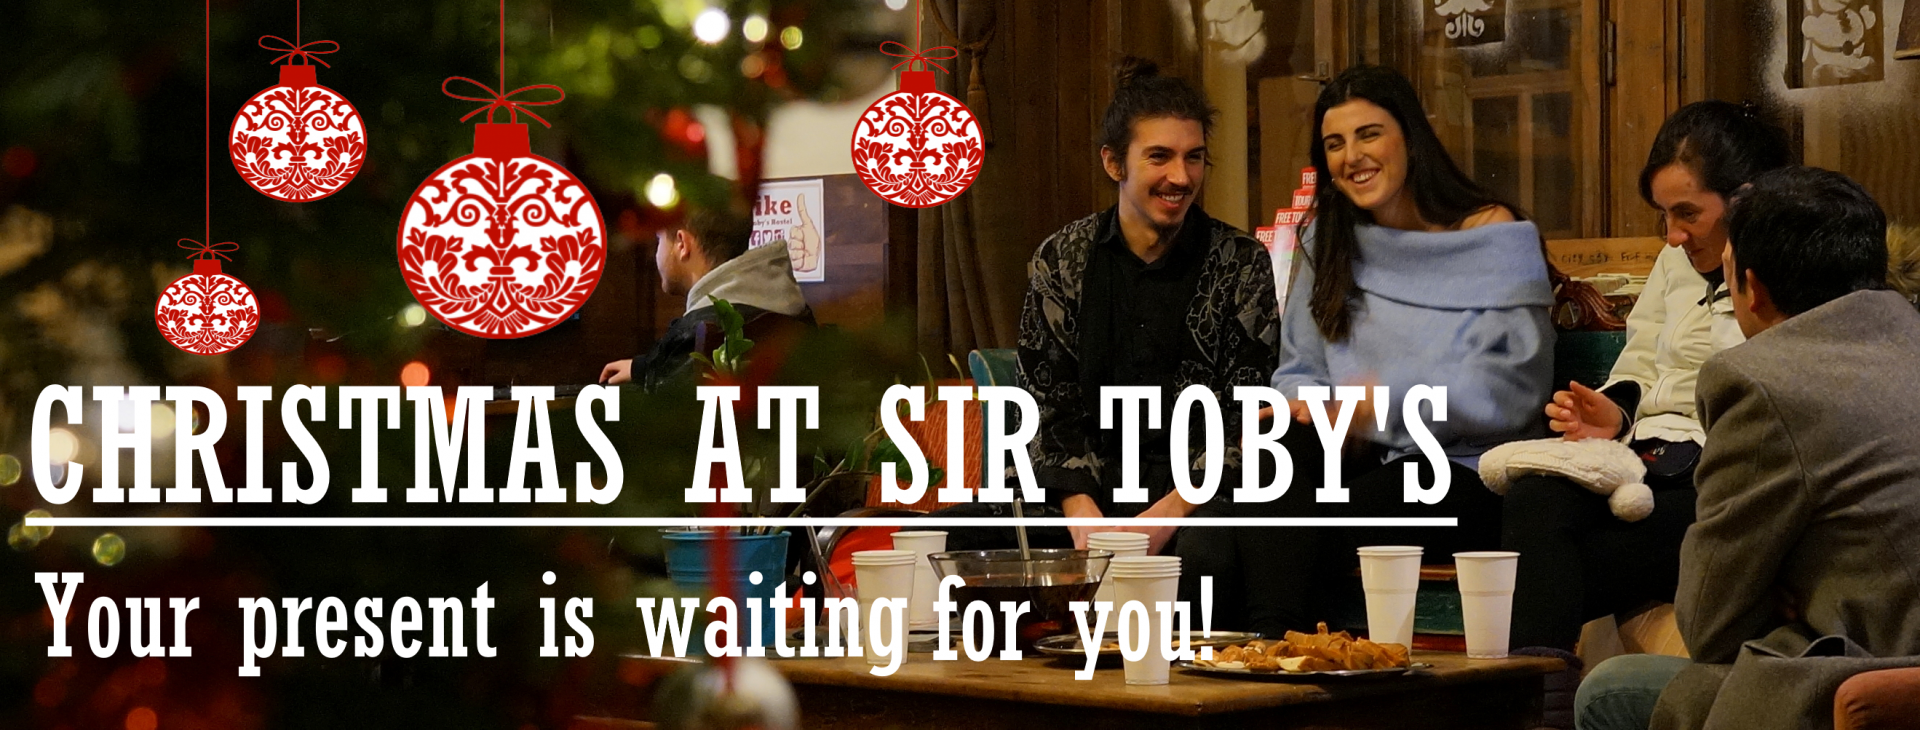 Spend Xmas with your friends at SIr Toby's